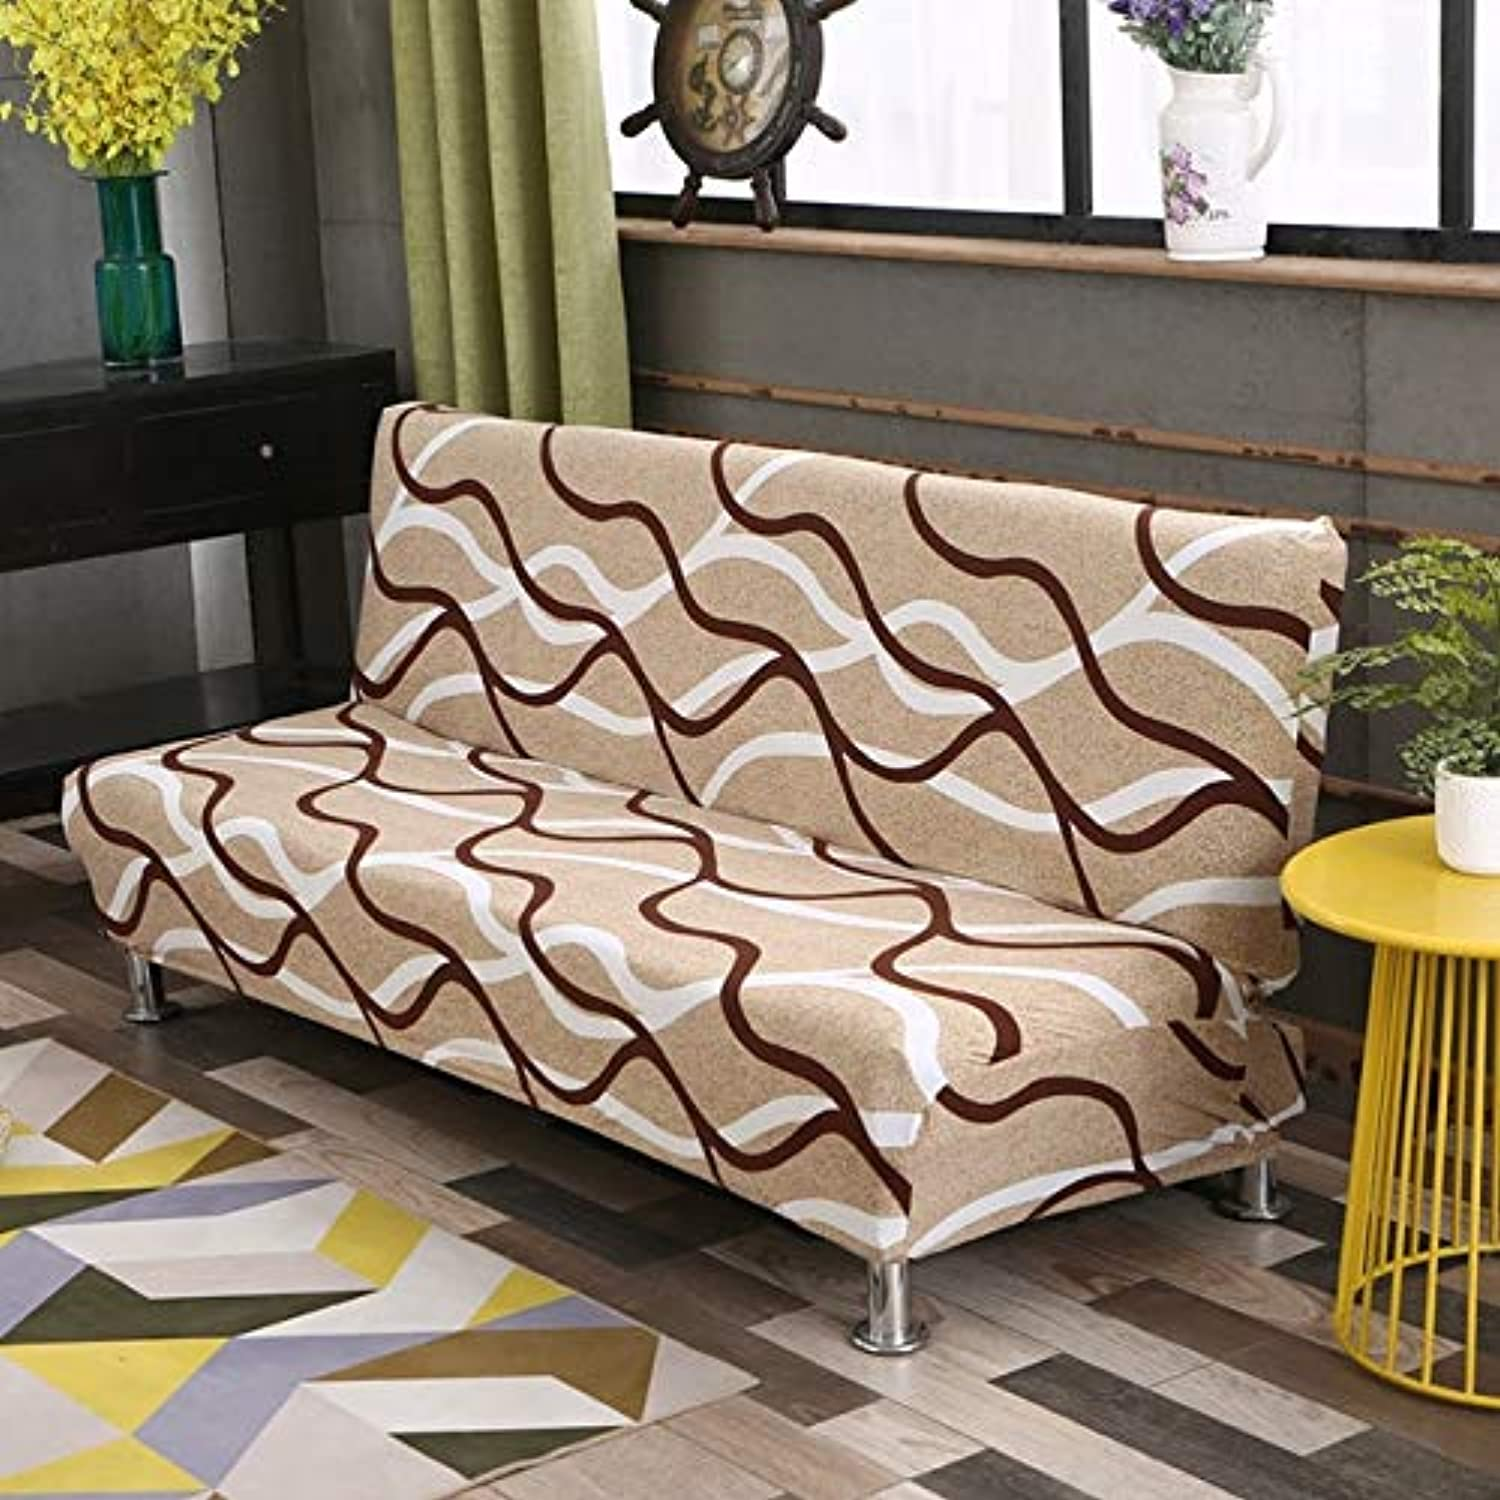 Dreamworld Elastic Sofa Bed Cover Stretch Sofa Bed Covers for Living Room 2 and 3 Seater Sofa Cover Universal Seat Cover   BYSH, M185cm-200cm